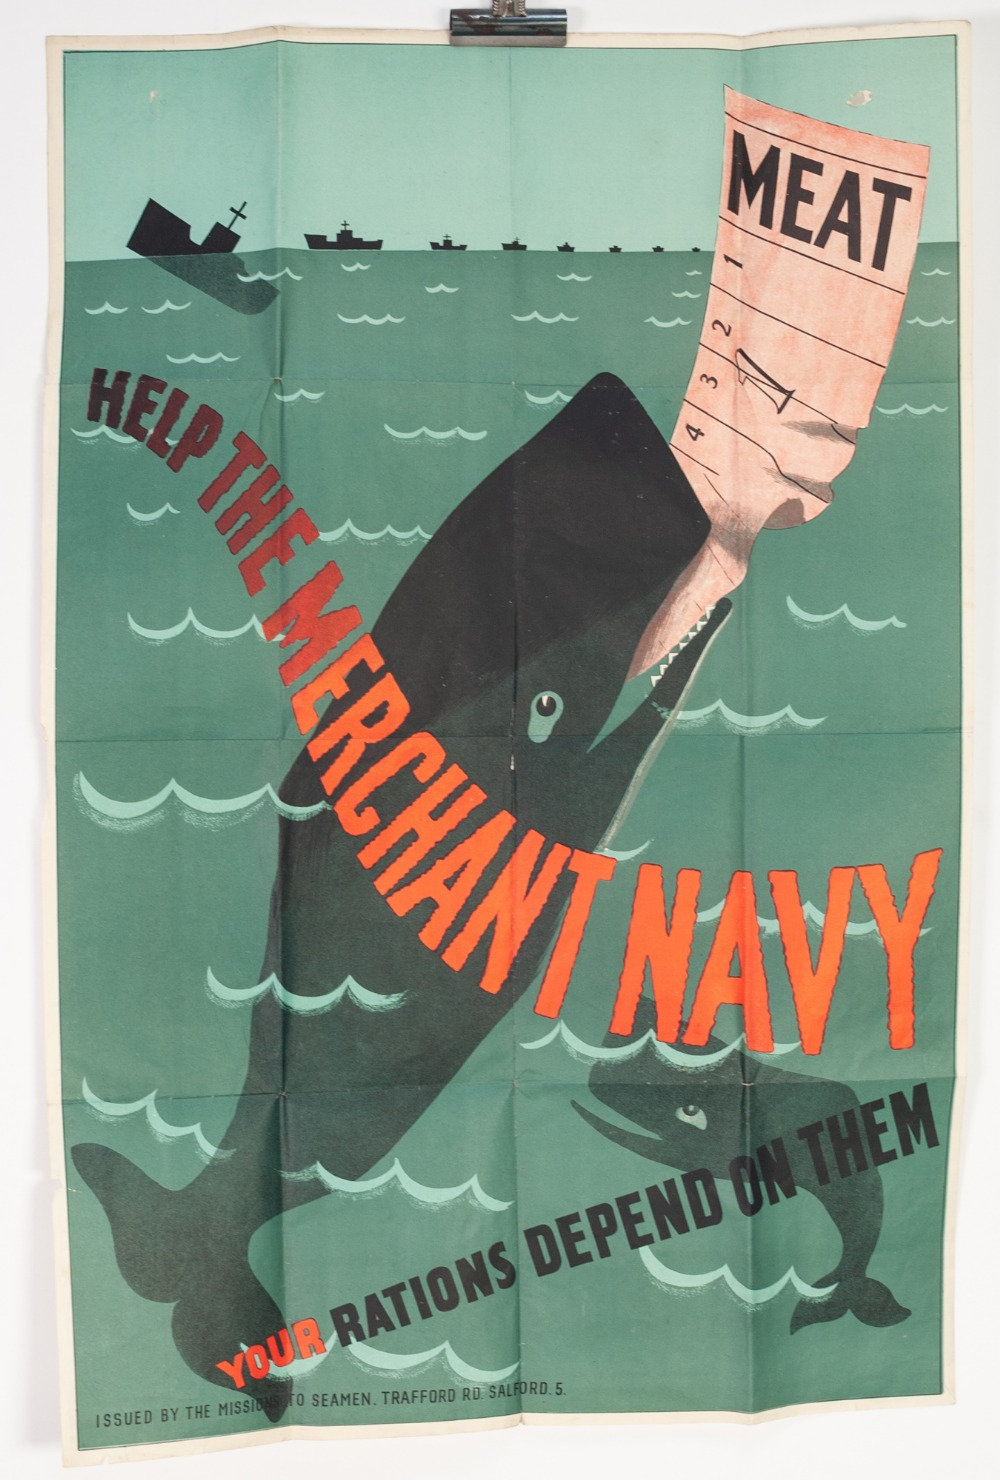 Lot 26 - ORIGINAL WORLD WAR II PROPAGANDA POSTER 'Help the Merchant Navy, Your Rations Depend on Them' Issued